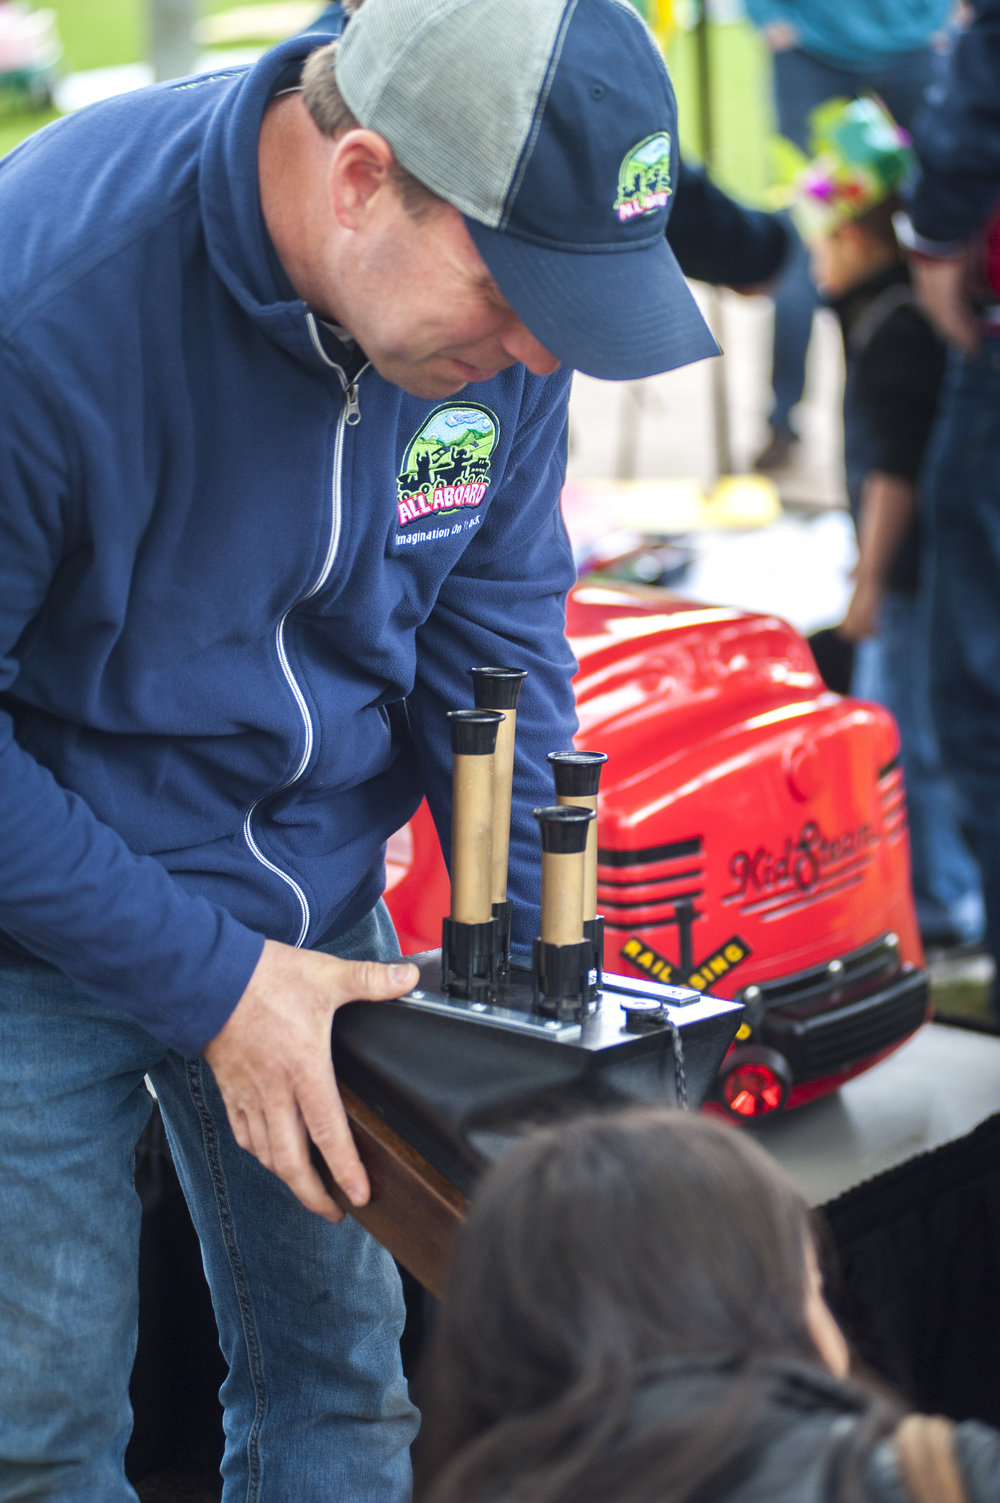 A representative from All Aboard: Imagination at Work, a company that provides kid-powered locomotives and model trains for events and parties, blows the horn of one of the train chimes on display before handing it off to a young boy for a turn.